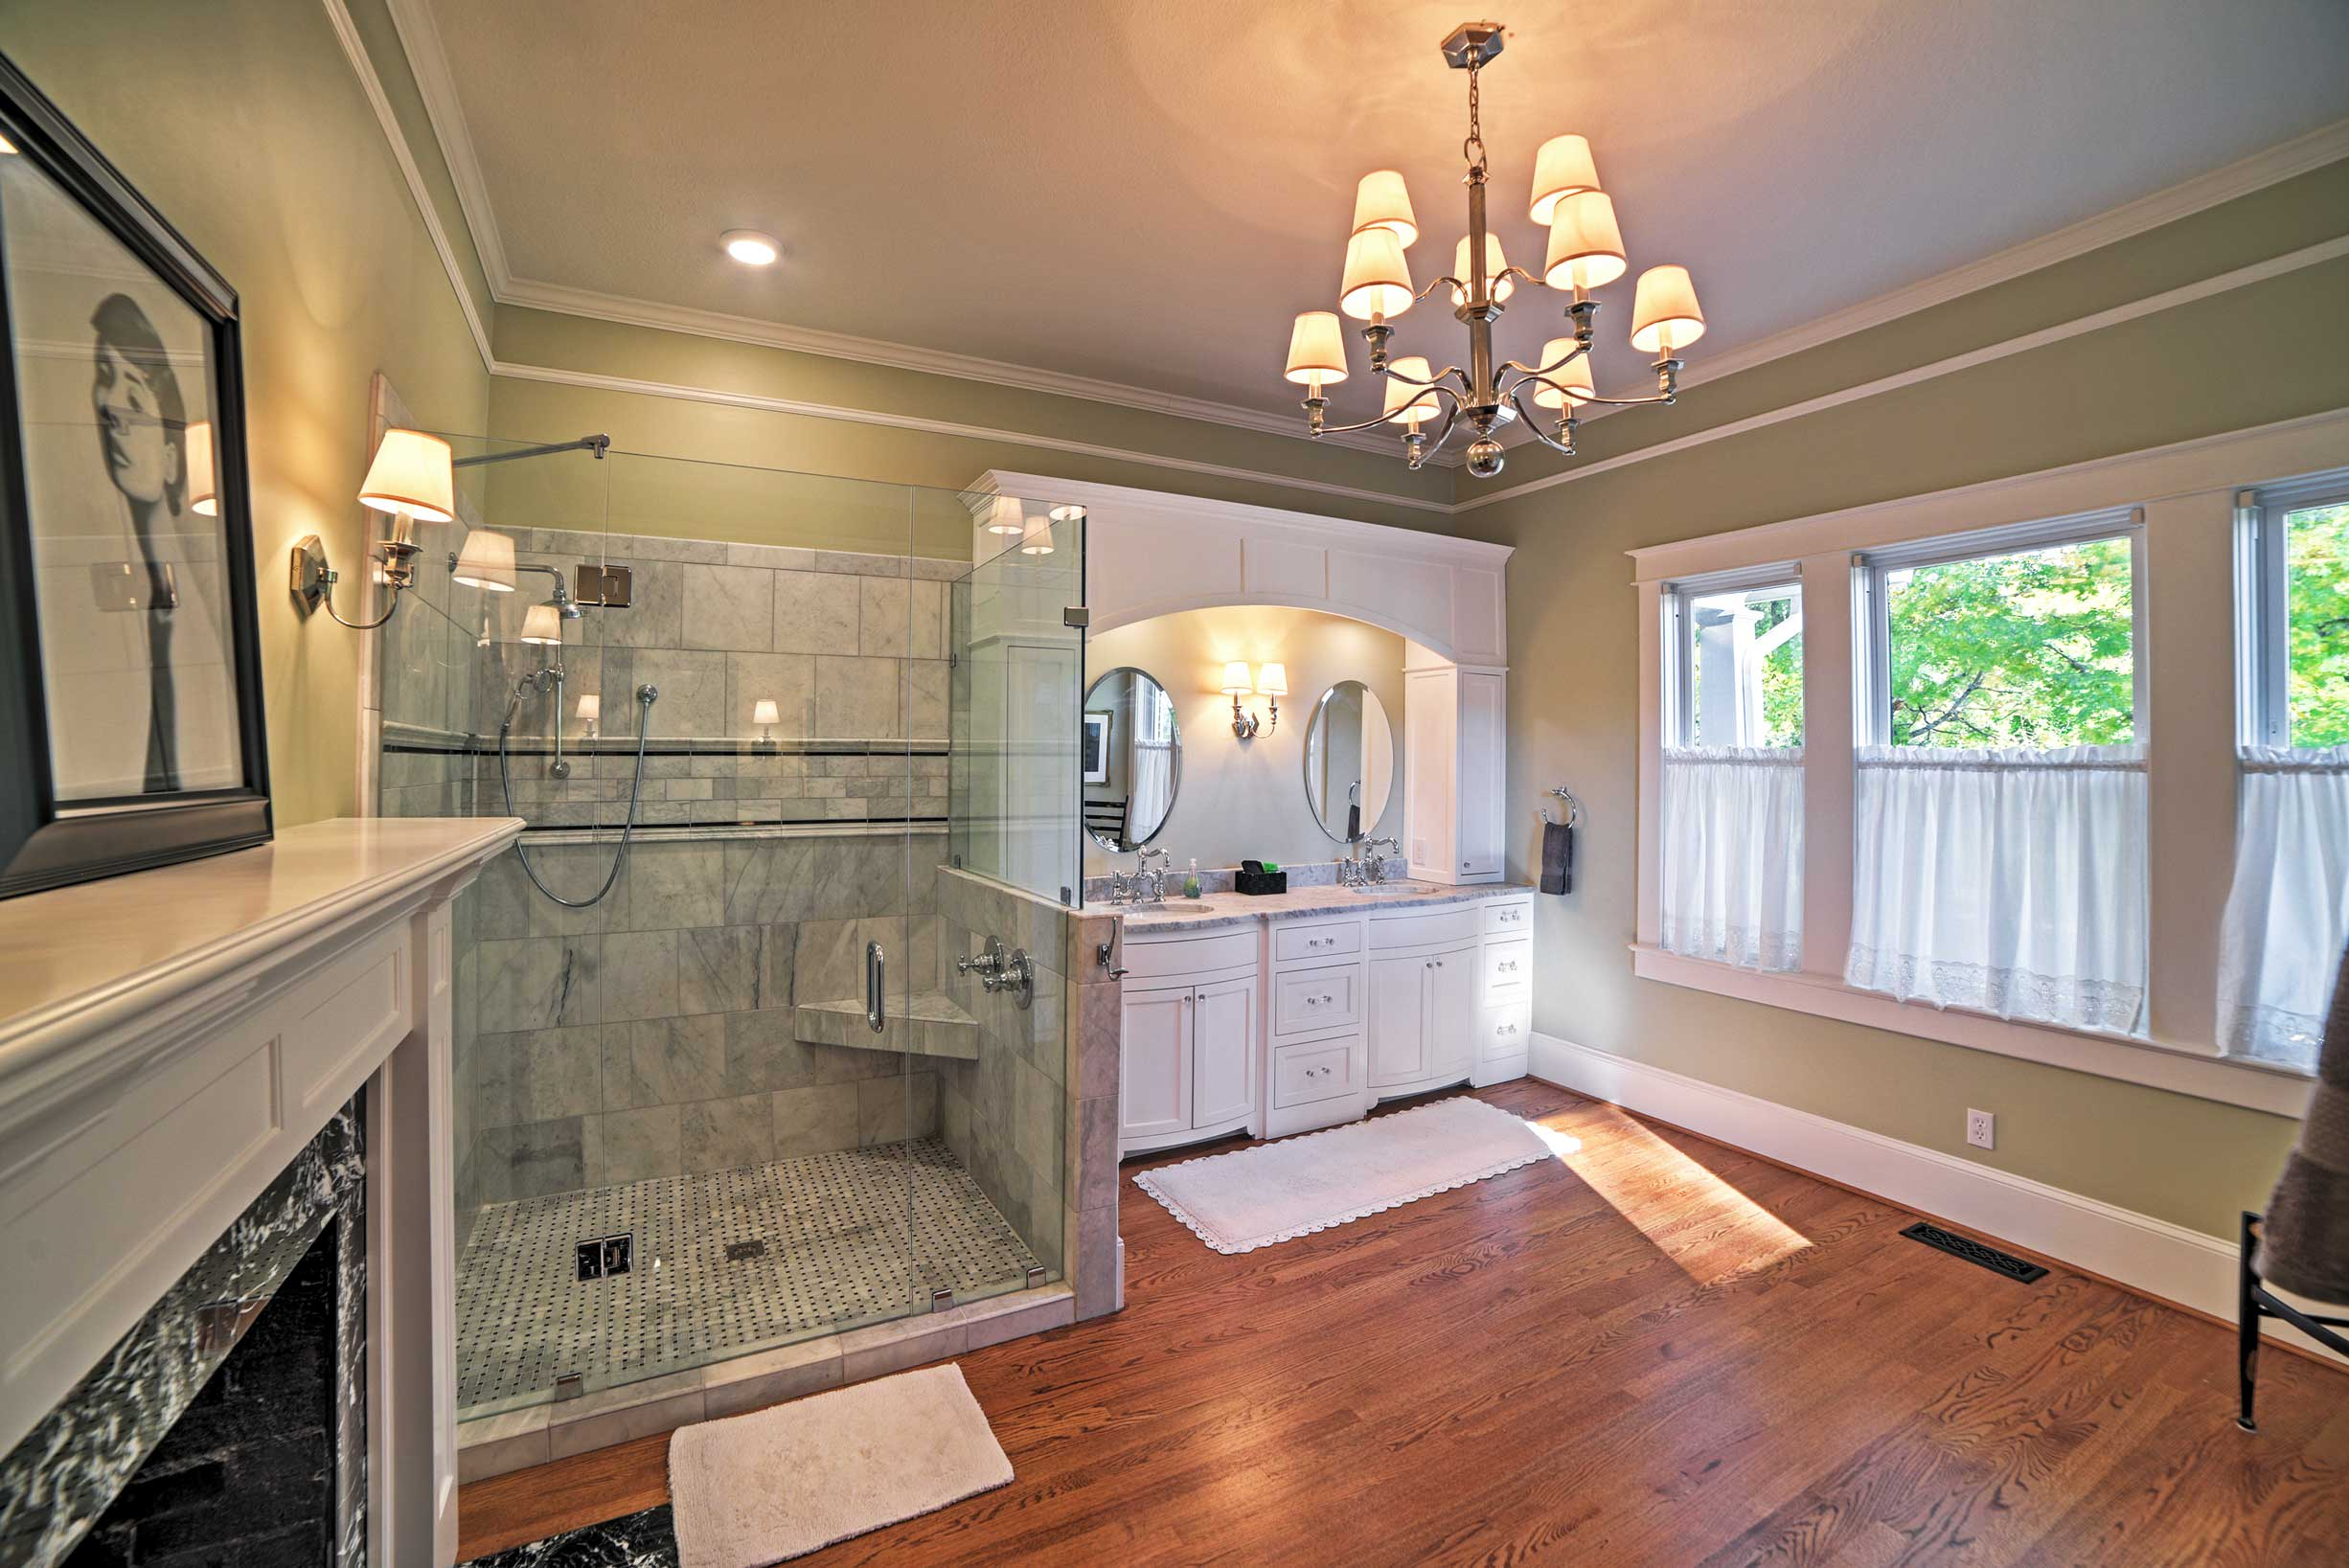 The bathroom is truly luxurious.